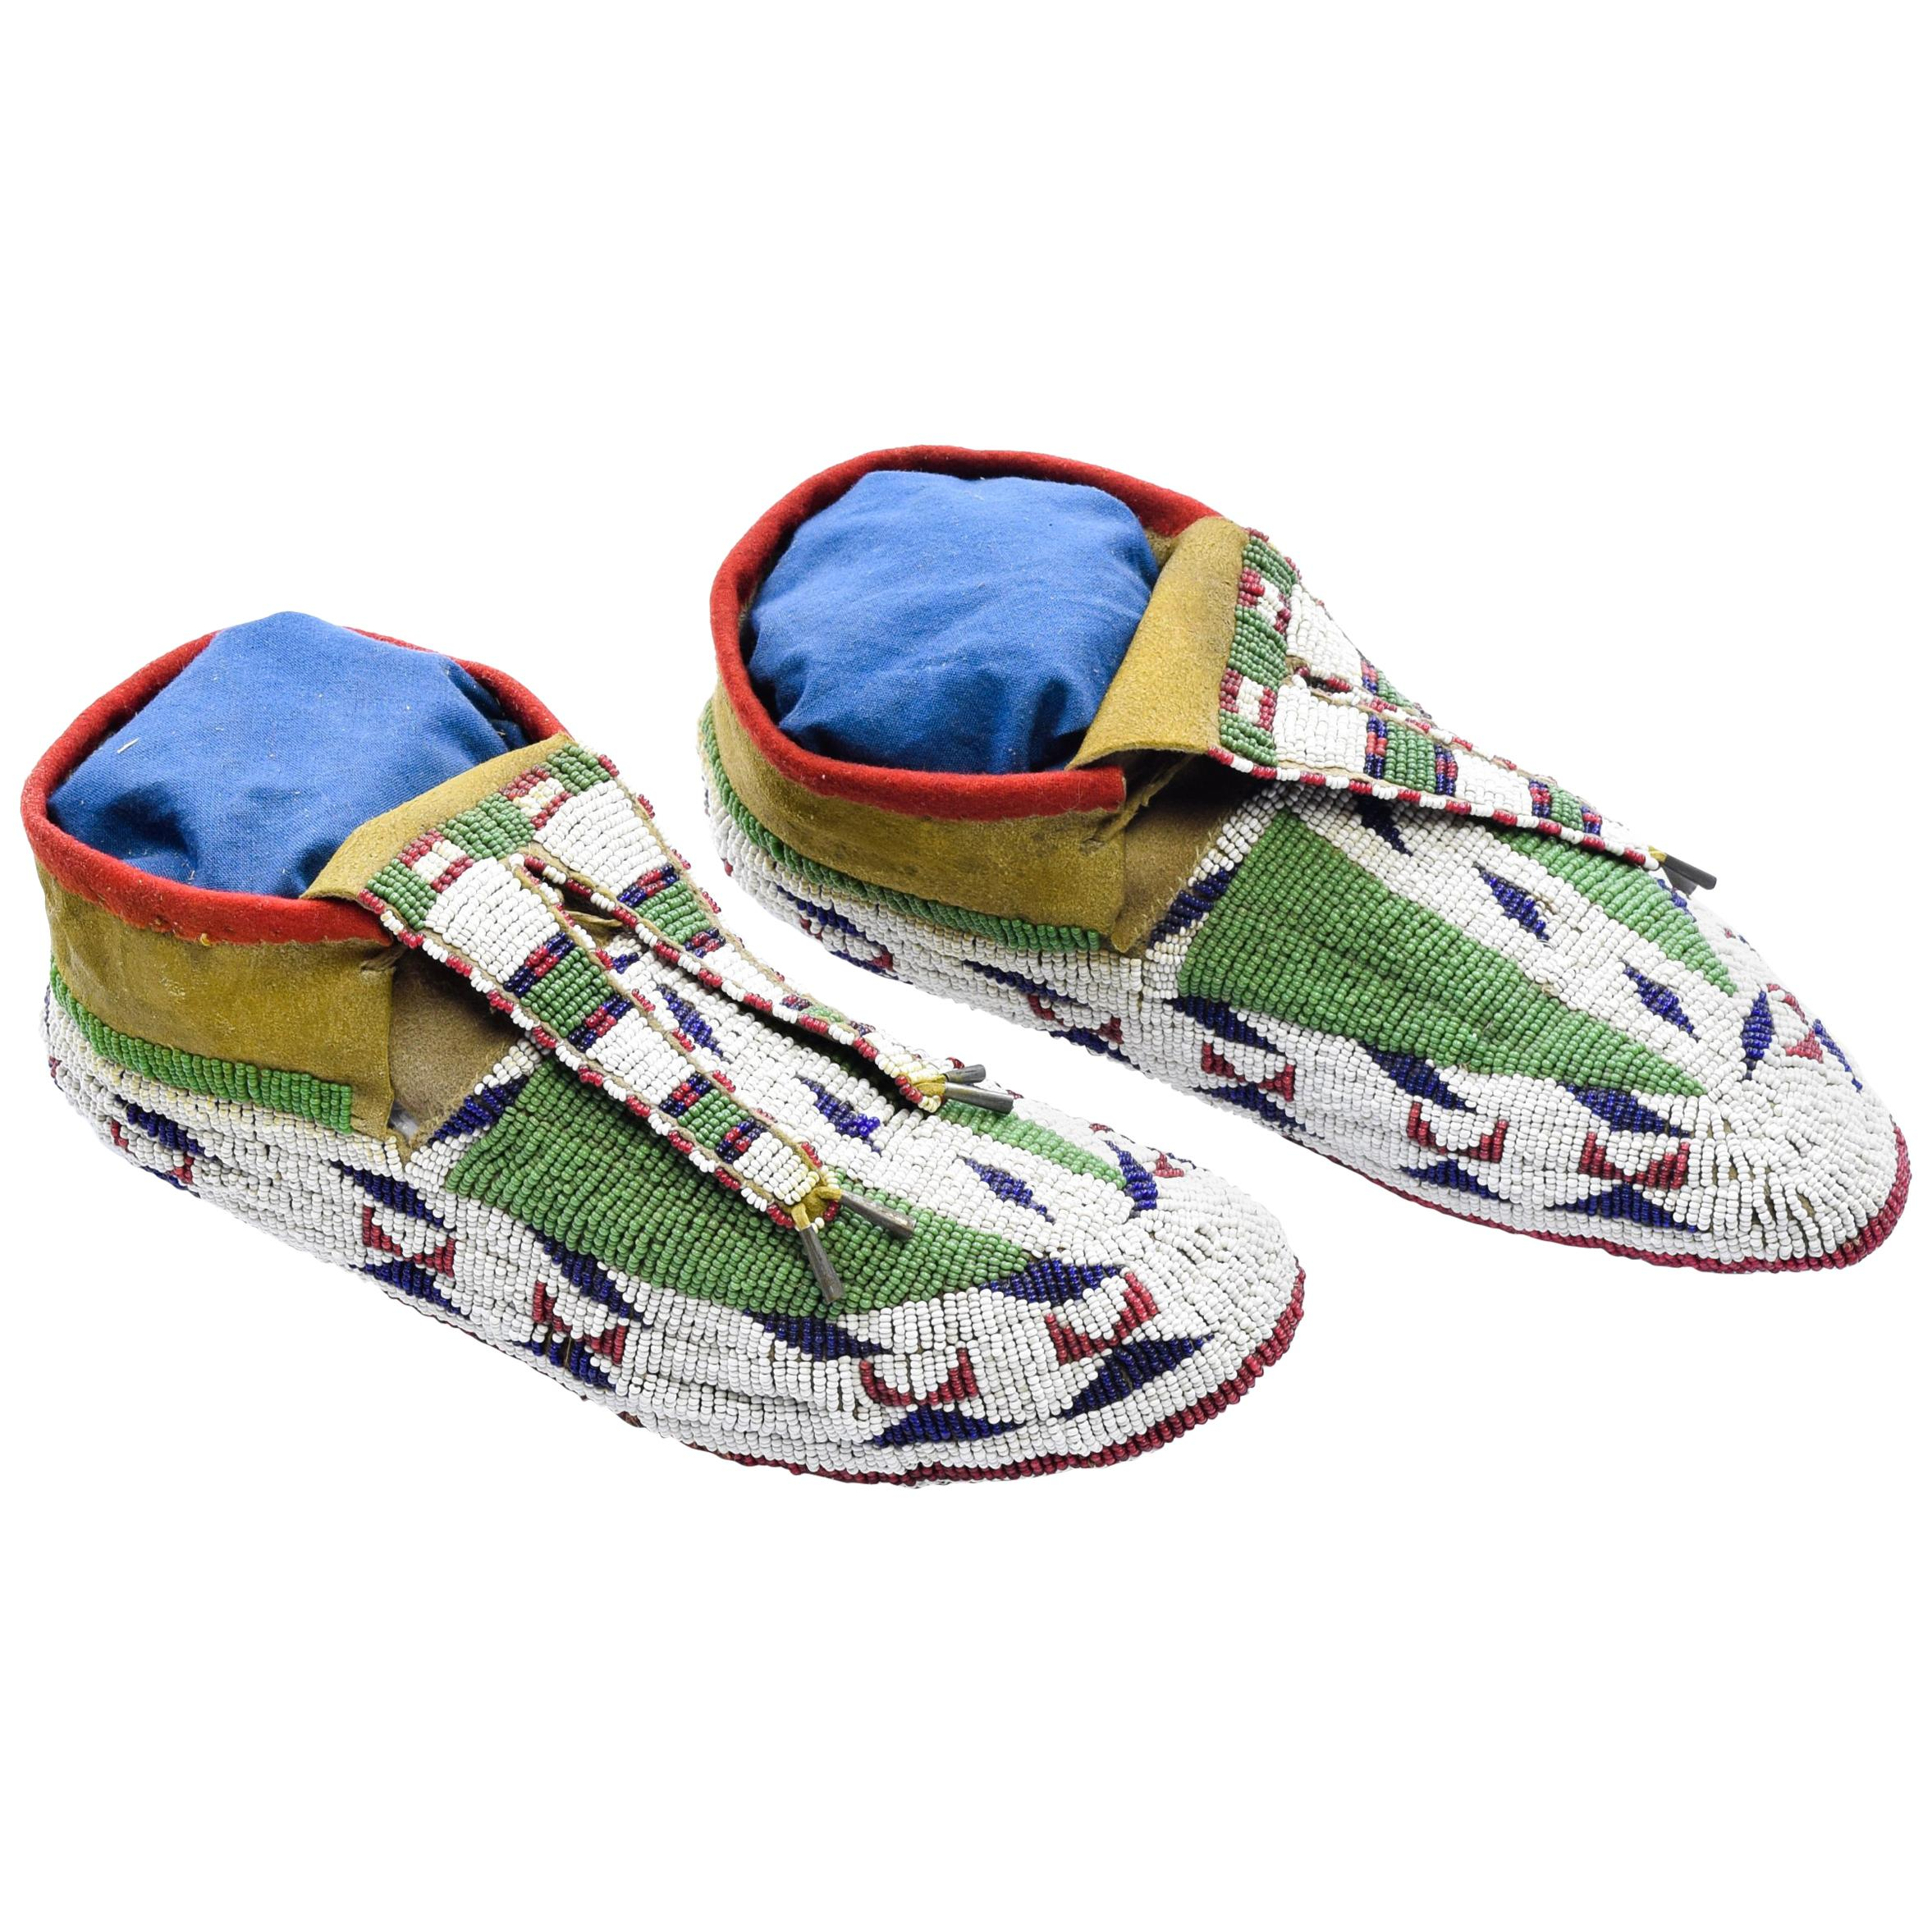 Native American Sioux Authentic Ceremonial Moccasins